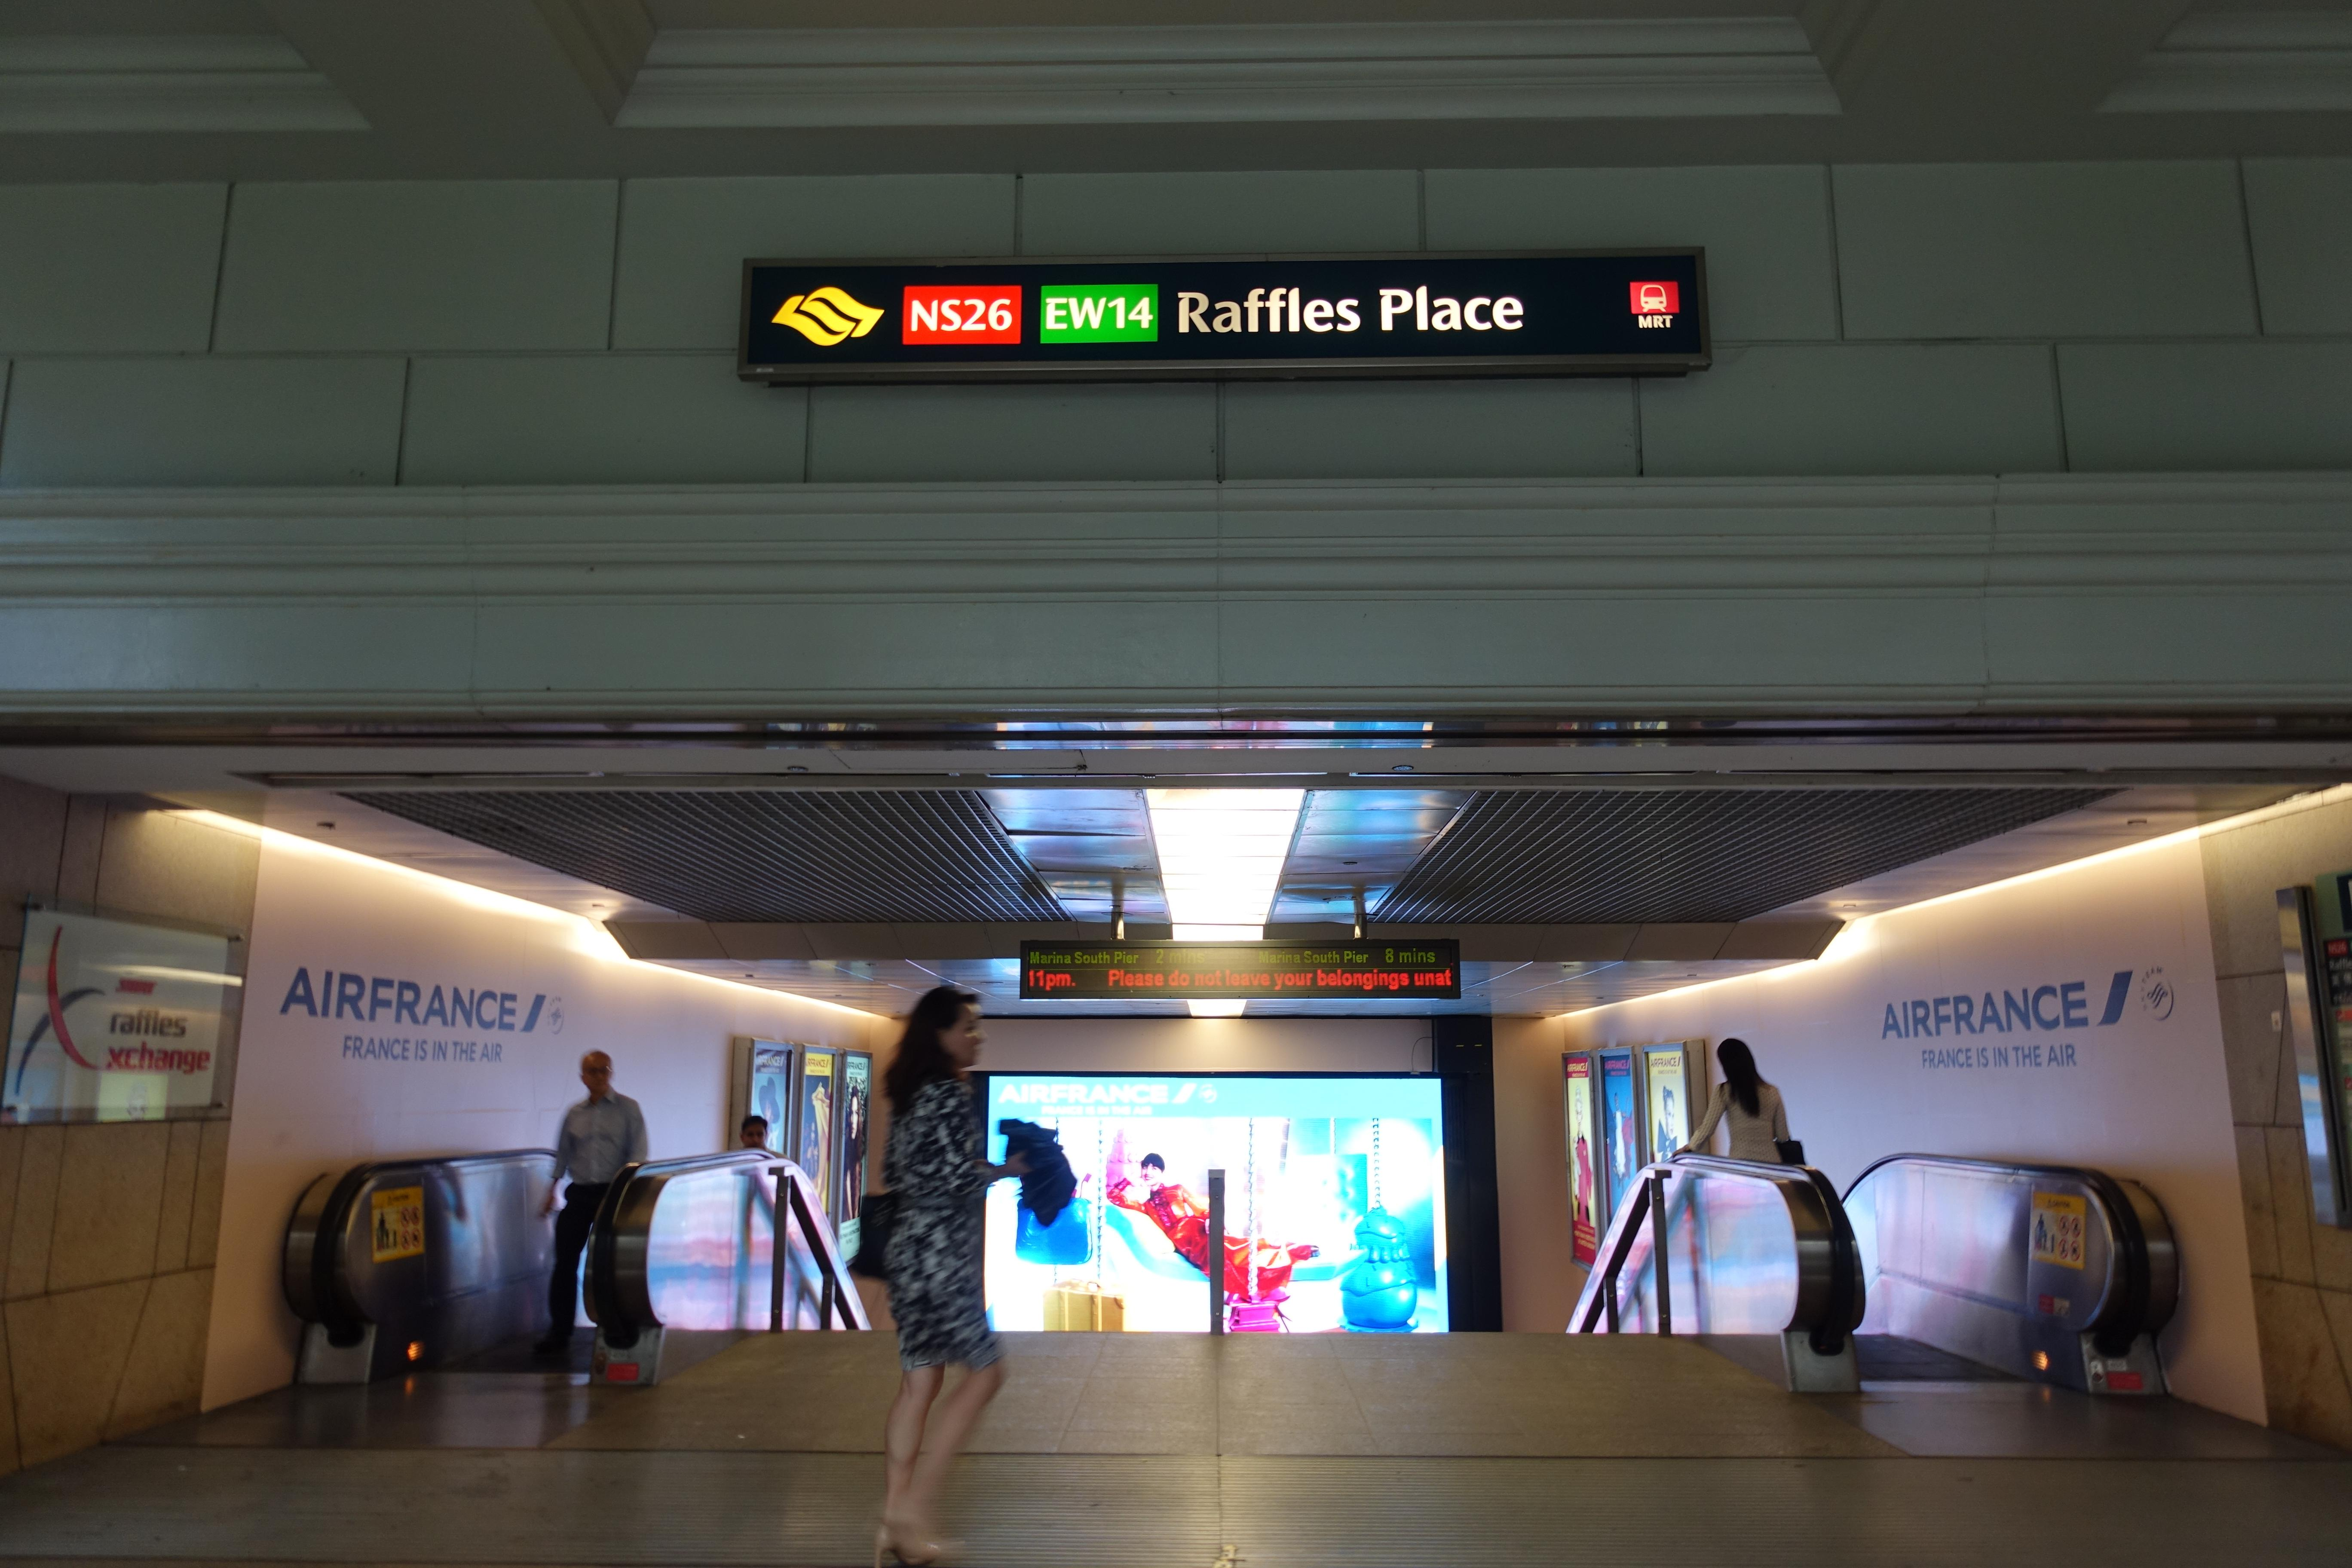 Man to be charged for assaulting SMRT service ambassador at Raffles Place MRT